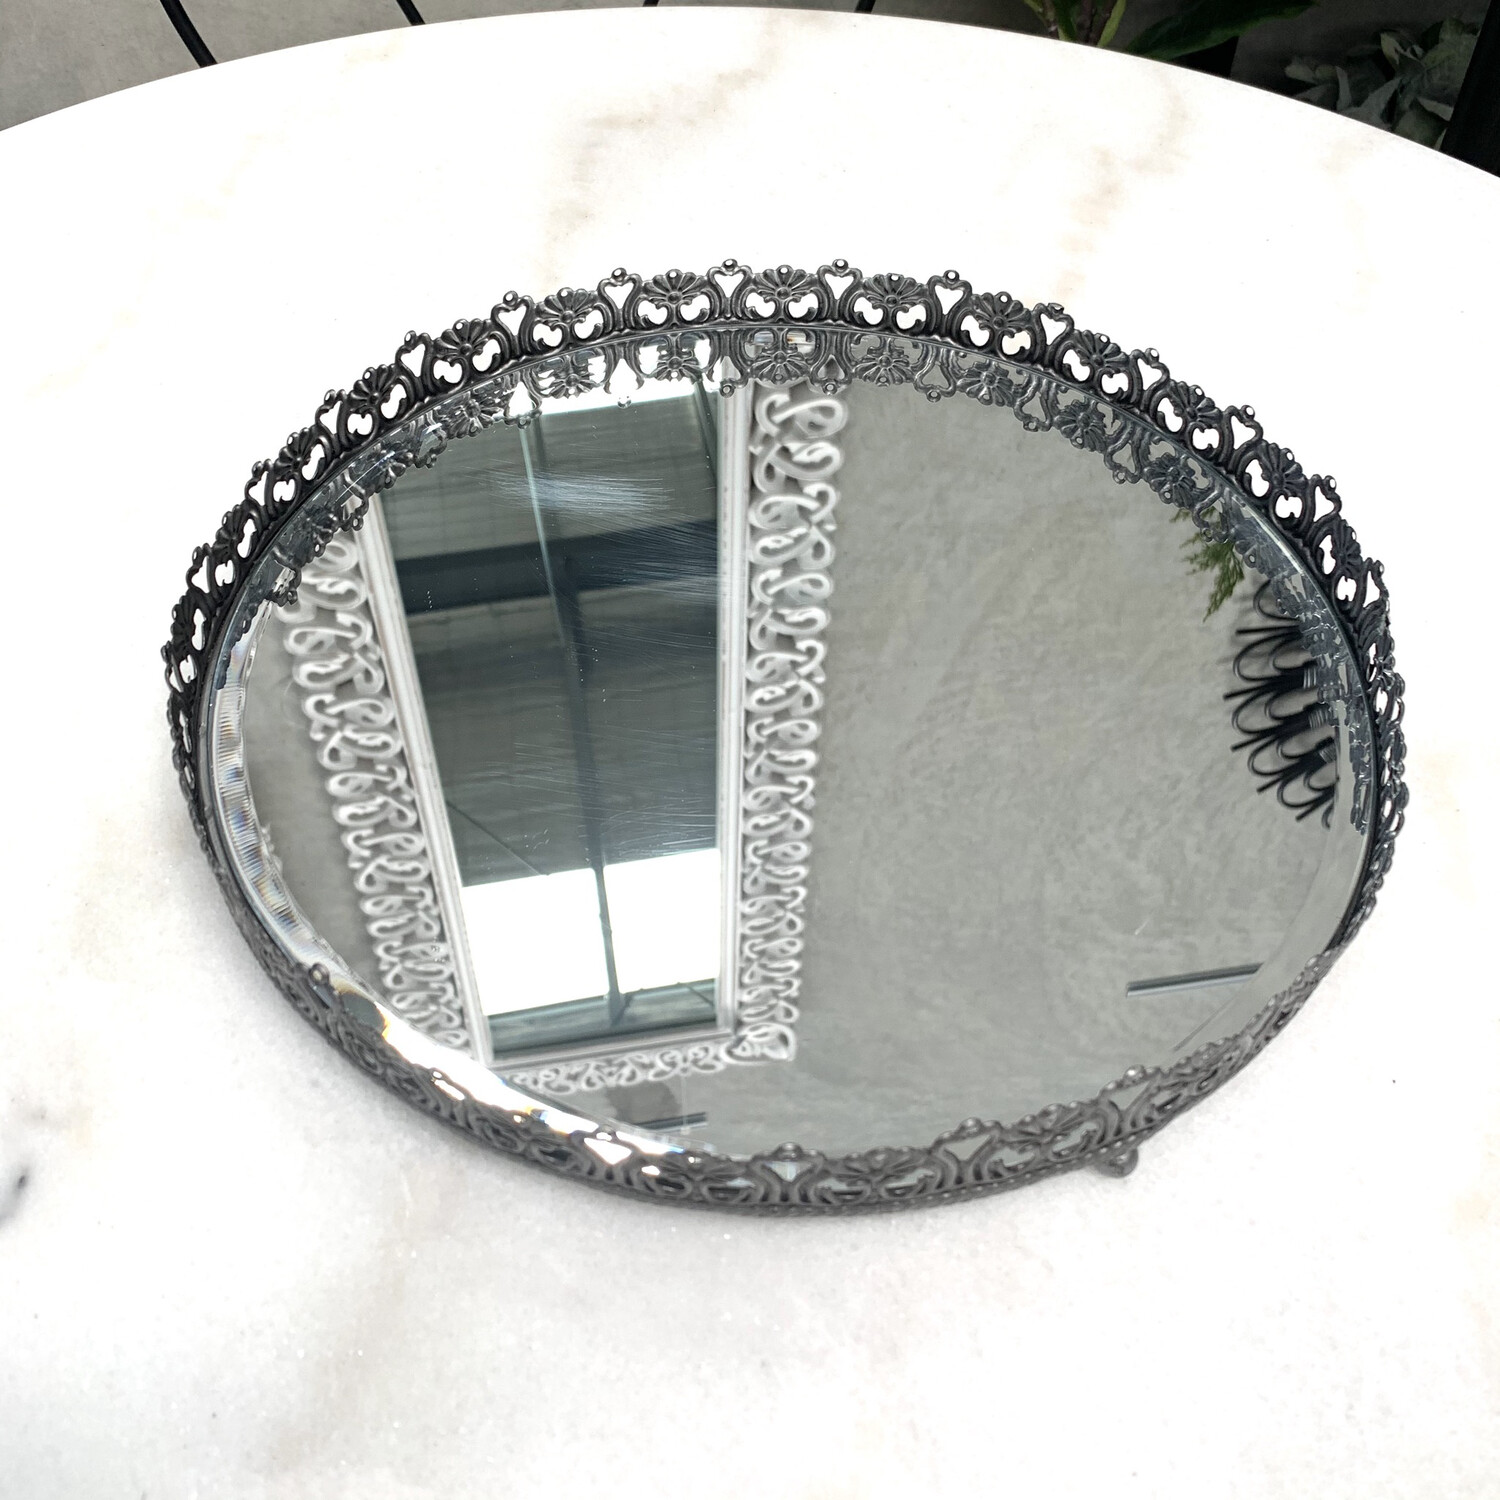 ANTIQUE SILVER TABLE TRAY